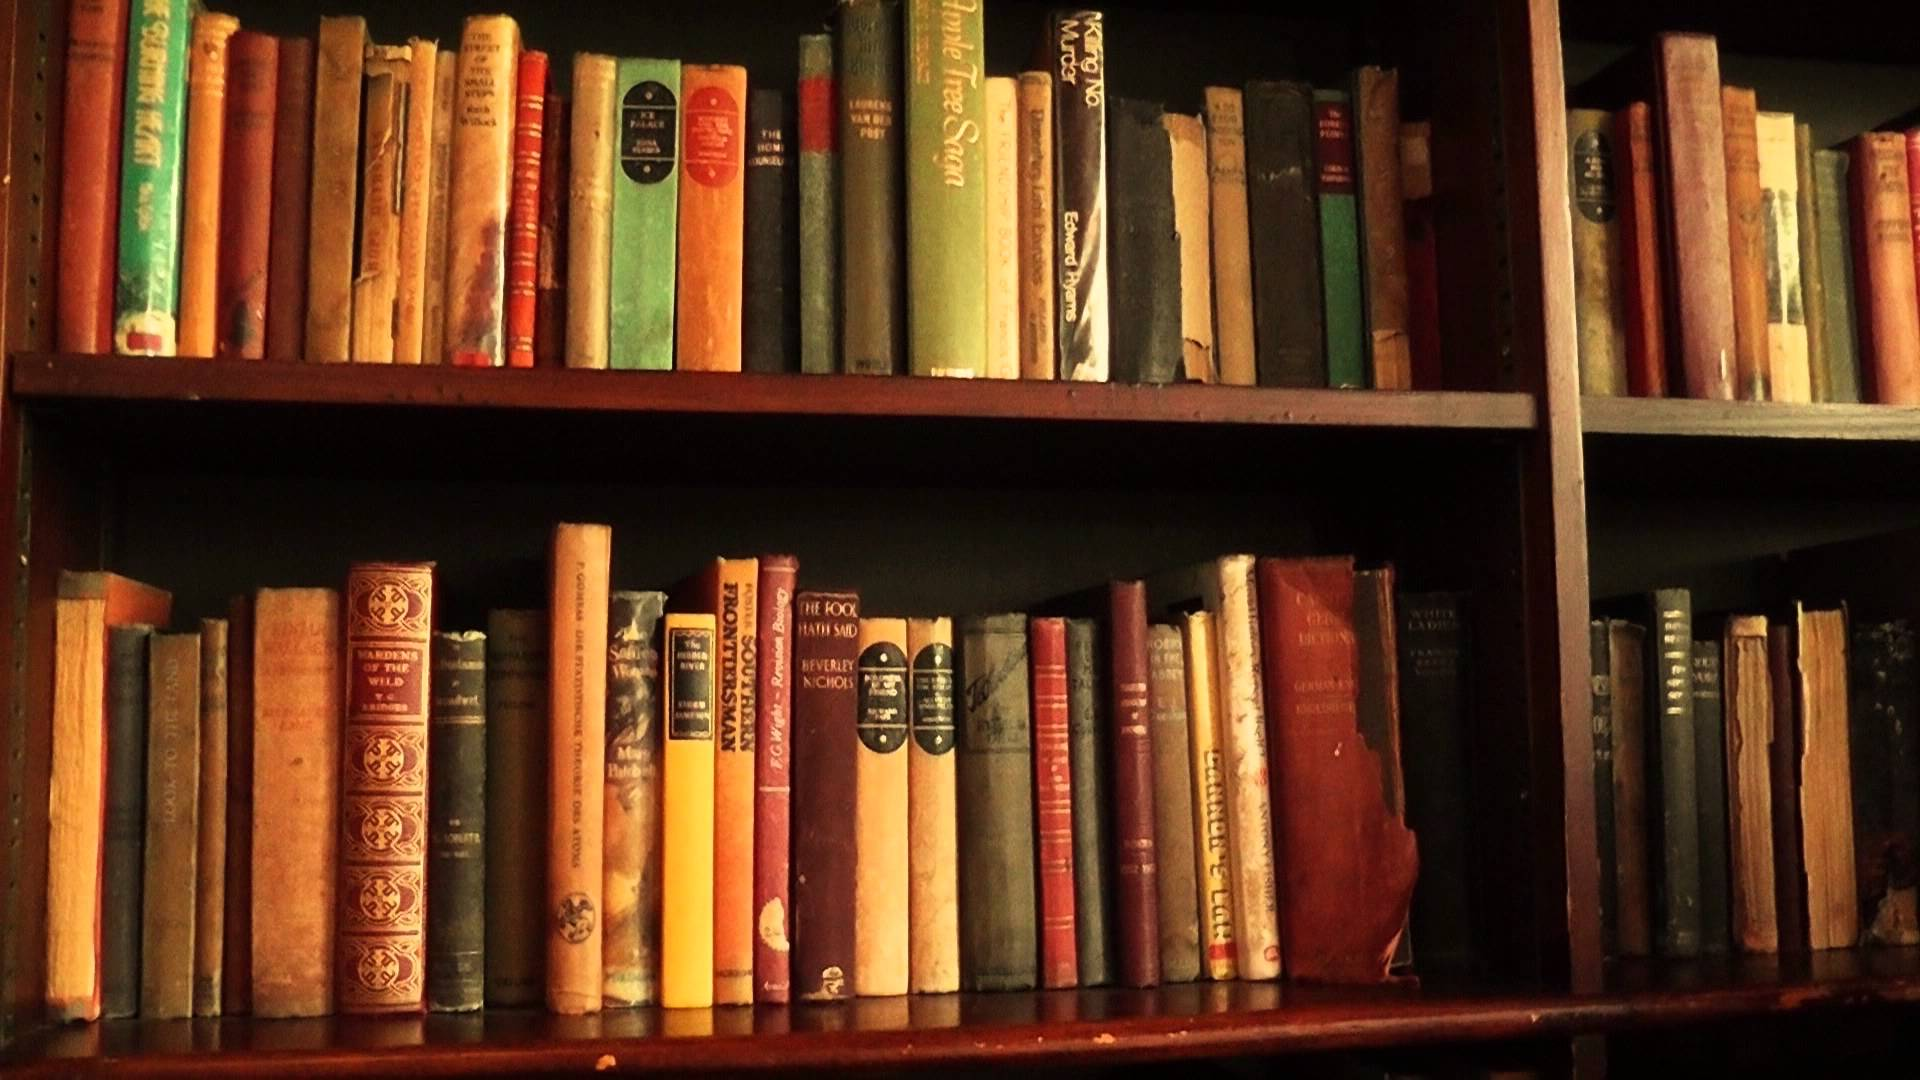 Free Stock Footage - Bookshelf With Old Books 01 - YouTube